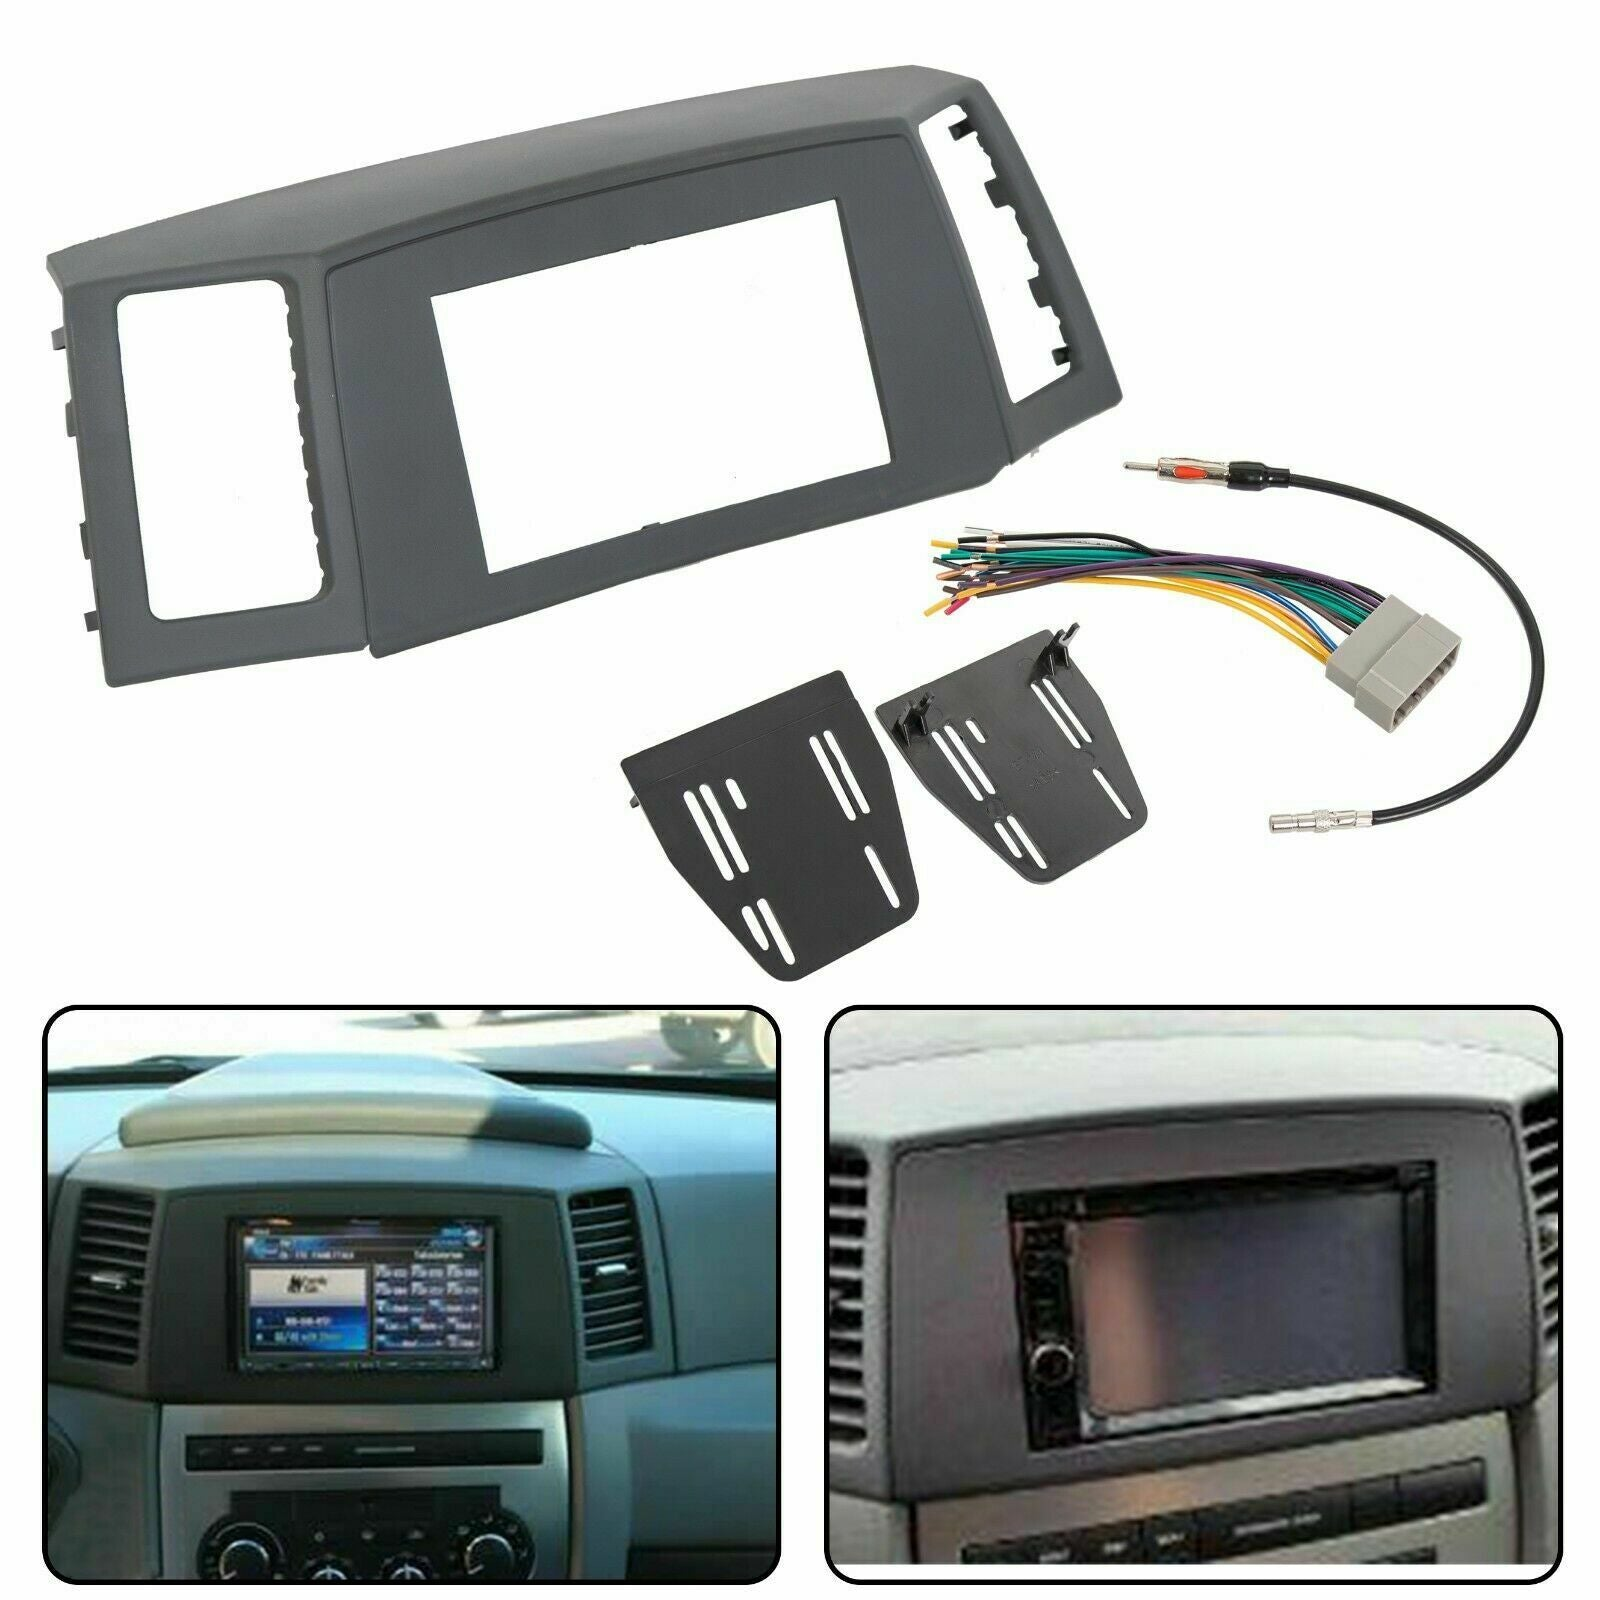 Double Din Radio Dash Kit Wiring Harness For 2005-2007 Jeep Grand Cher –  Mutazu Inc. | 2005 Jeep Grand Cherokee Radio Wiring Harness |  | Mutazu